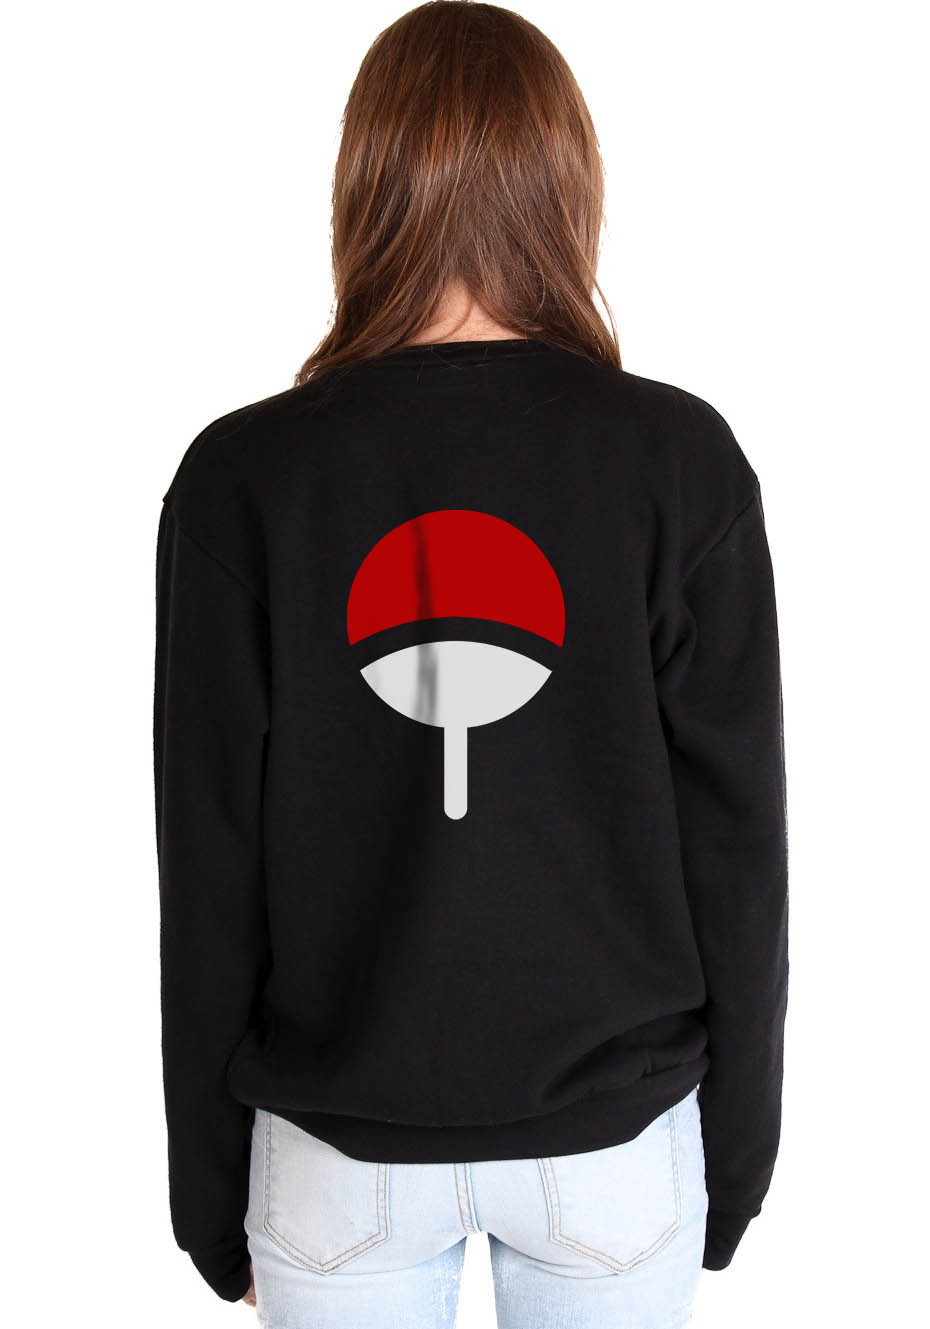 Uciha uchiha sweat black back1